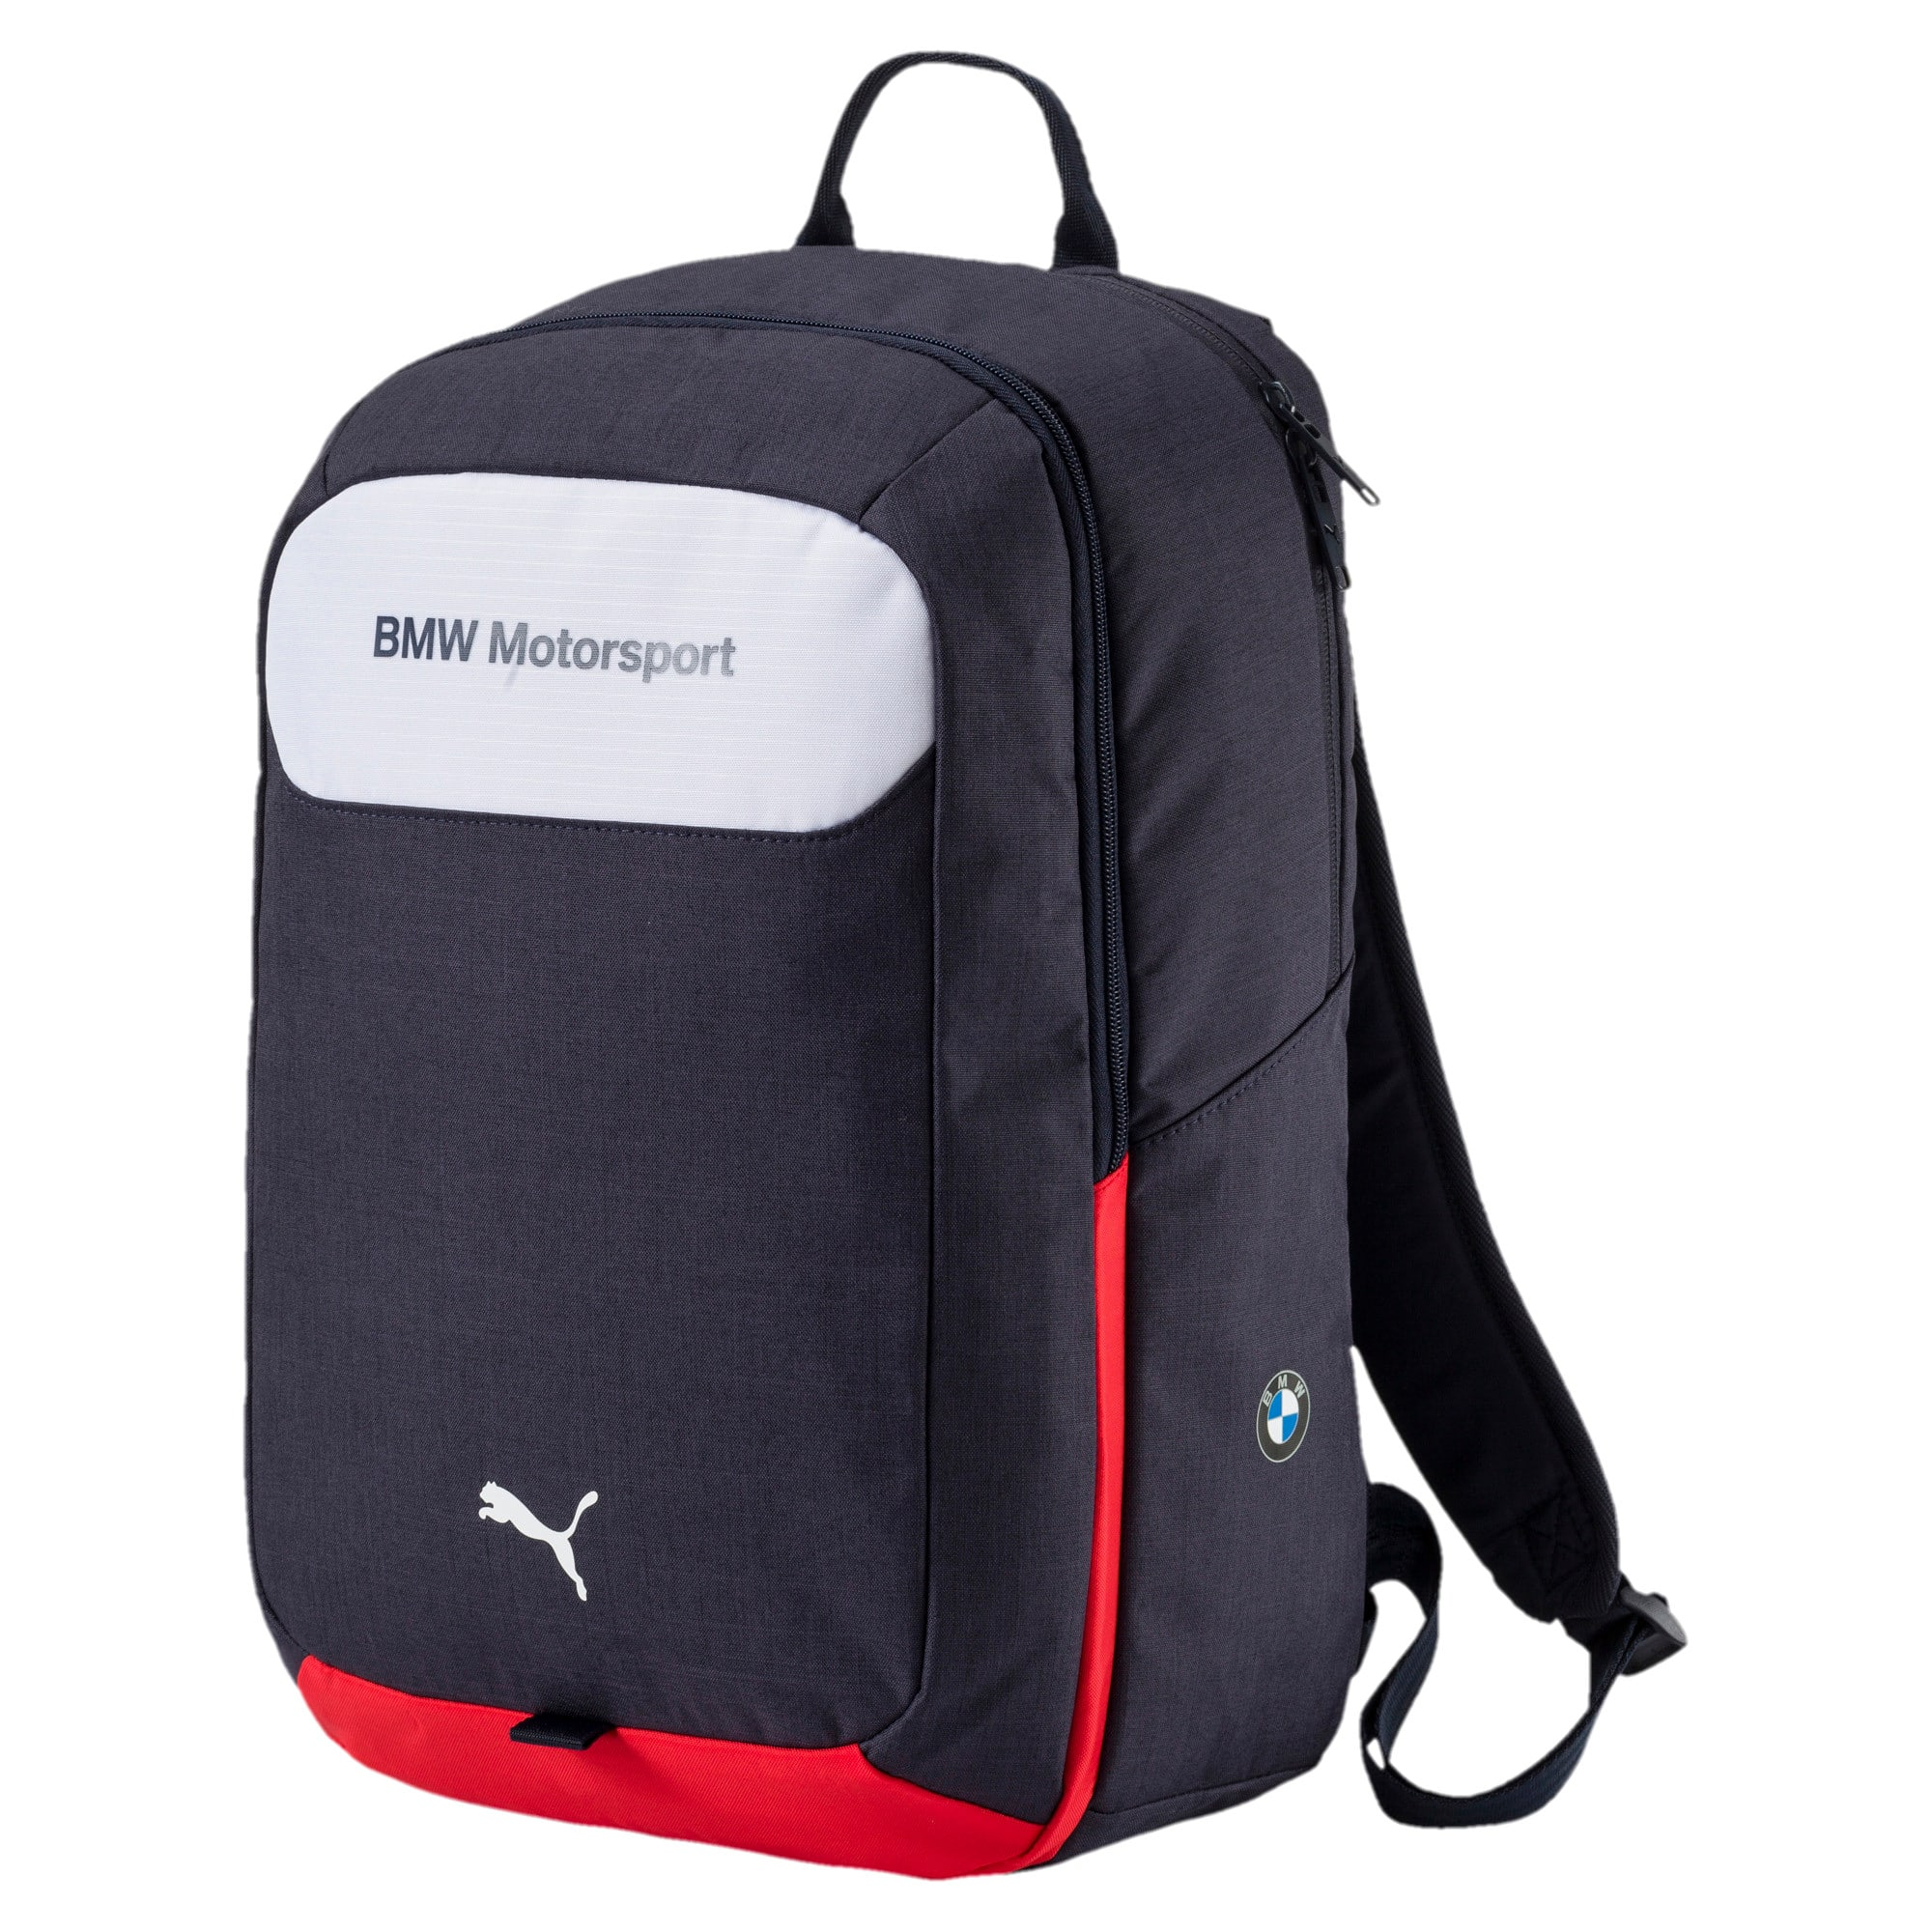 Thumbnail 1 of BMW Motorsport Backpack, Team Blue-Puma White, medium-IND